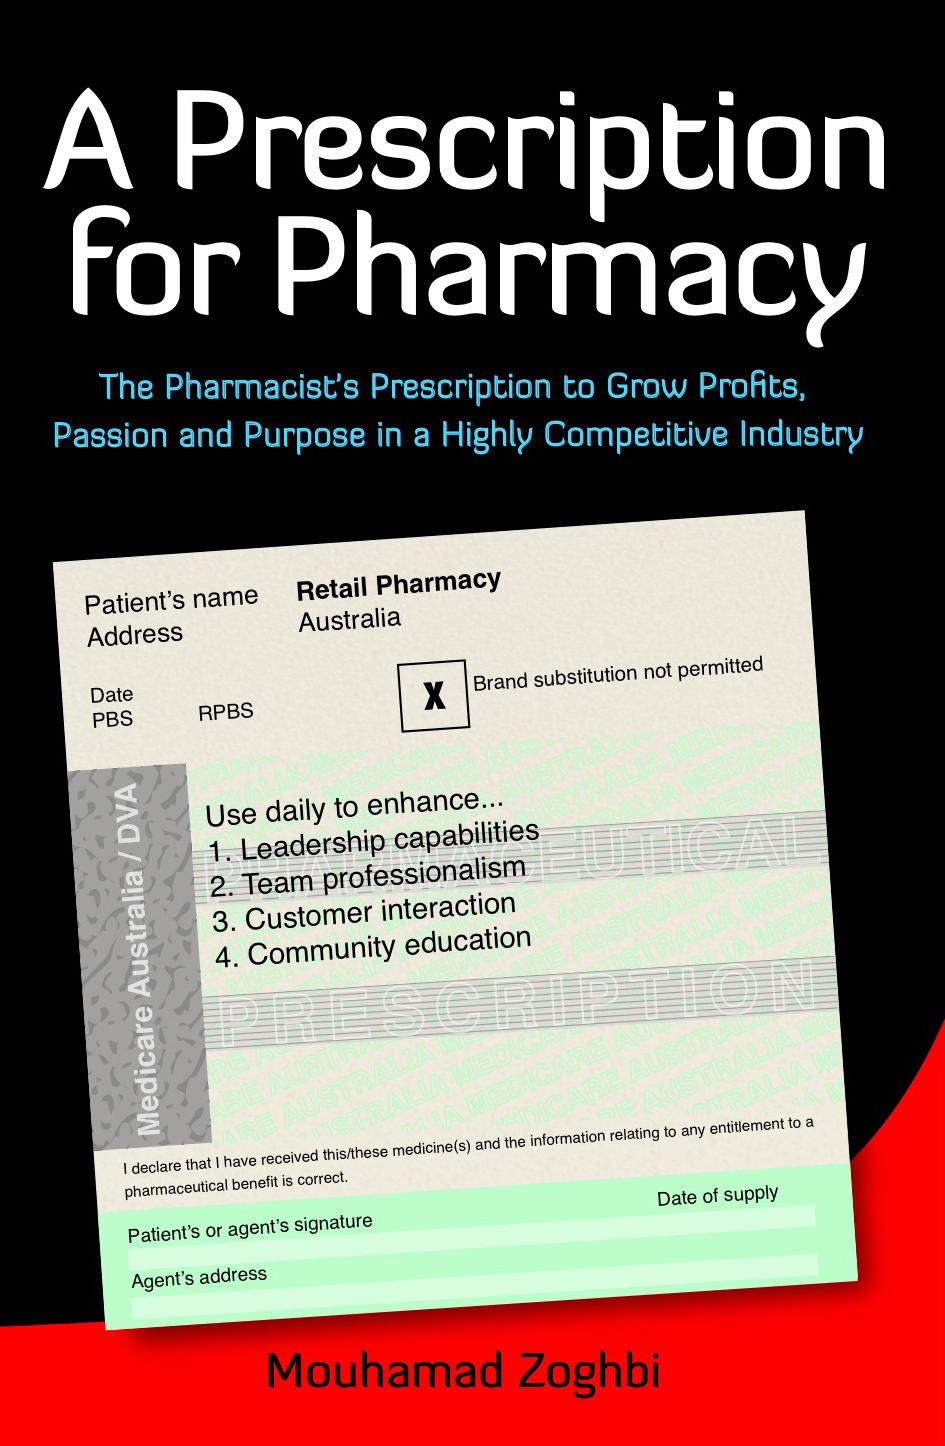 The Prescription for Pharmacy